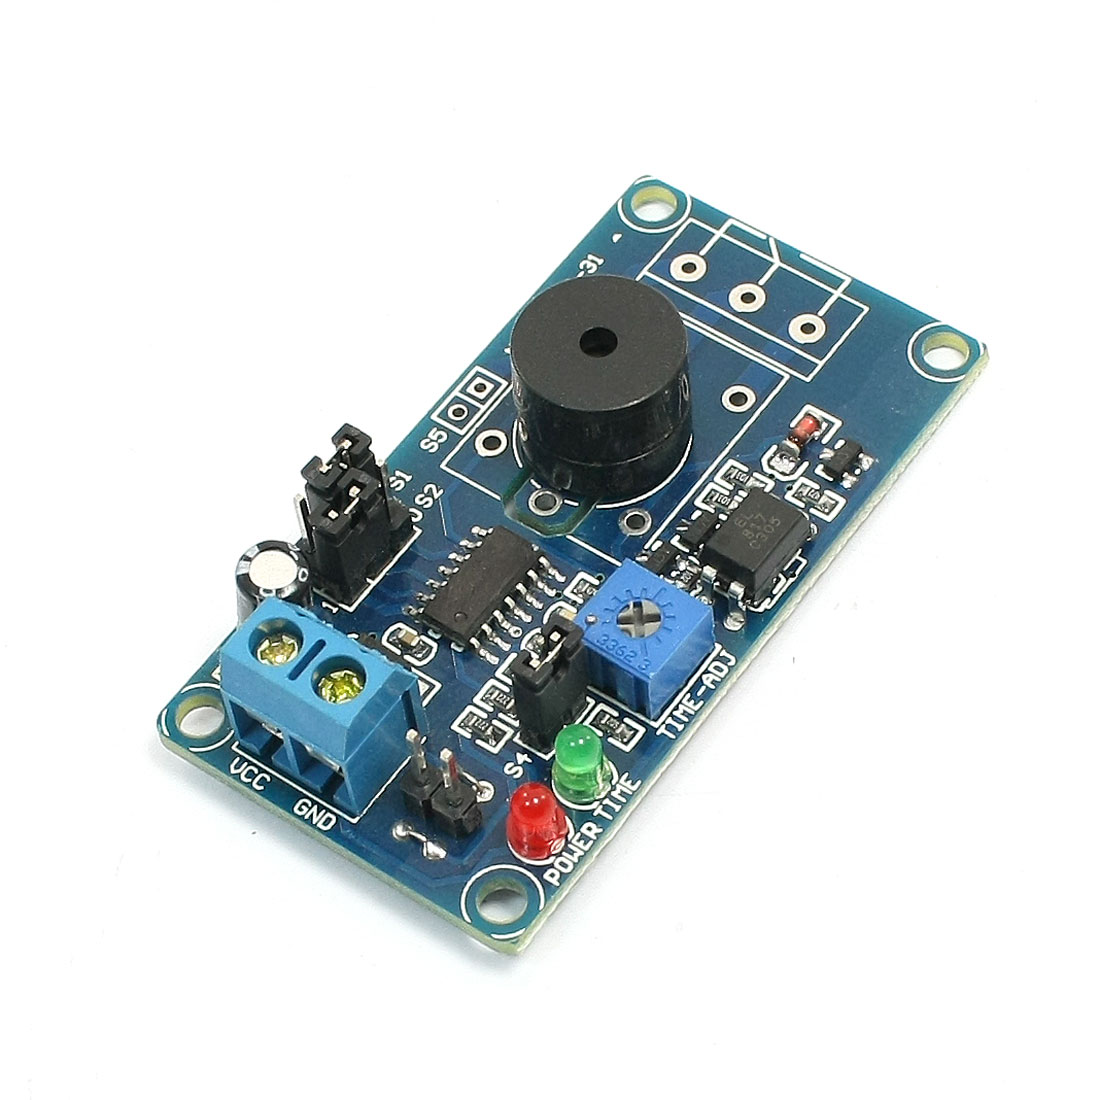 DC 5V 0.1S-1H Adjustable Time Delay Relay 85dB Alarm Module Board